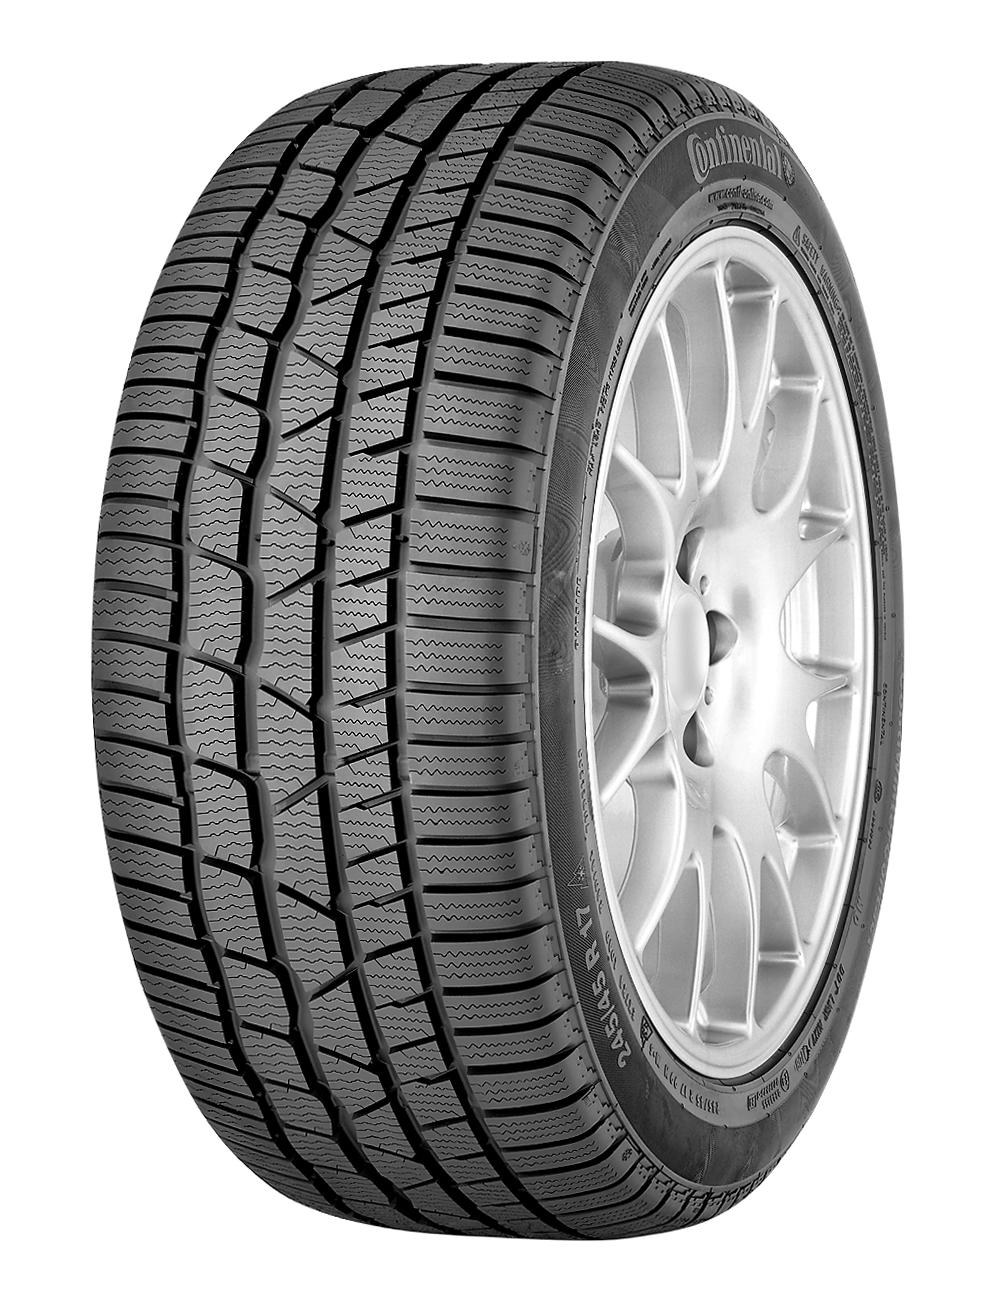 225/45R17 91H, Continental, ContiWinterContact TS 830 P